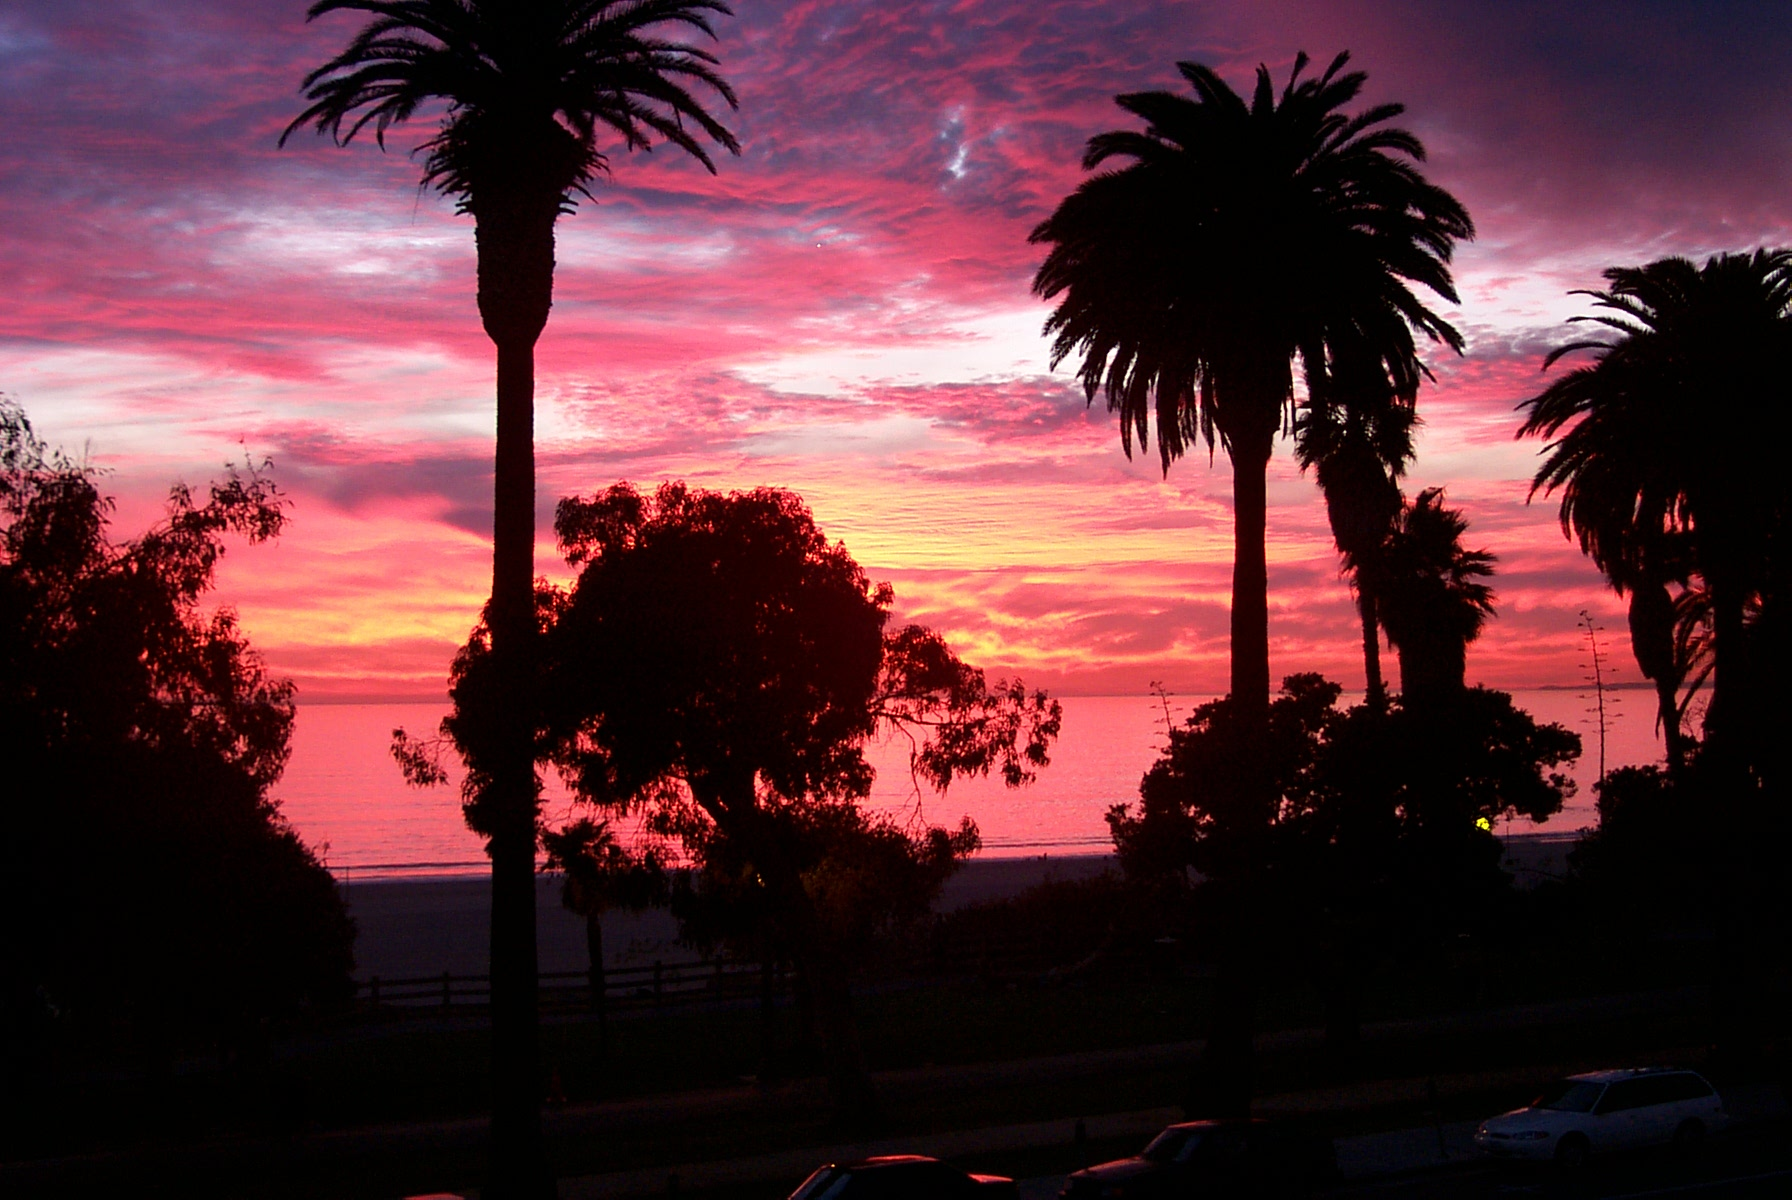 Sunset in Santa Monica State Beach in Santa Monica, California